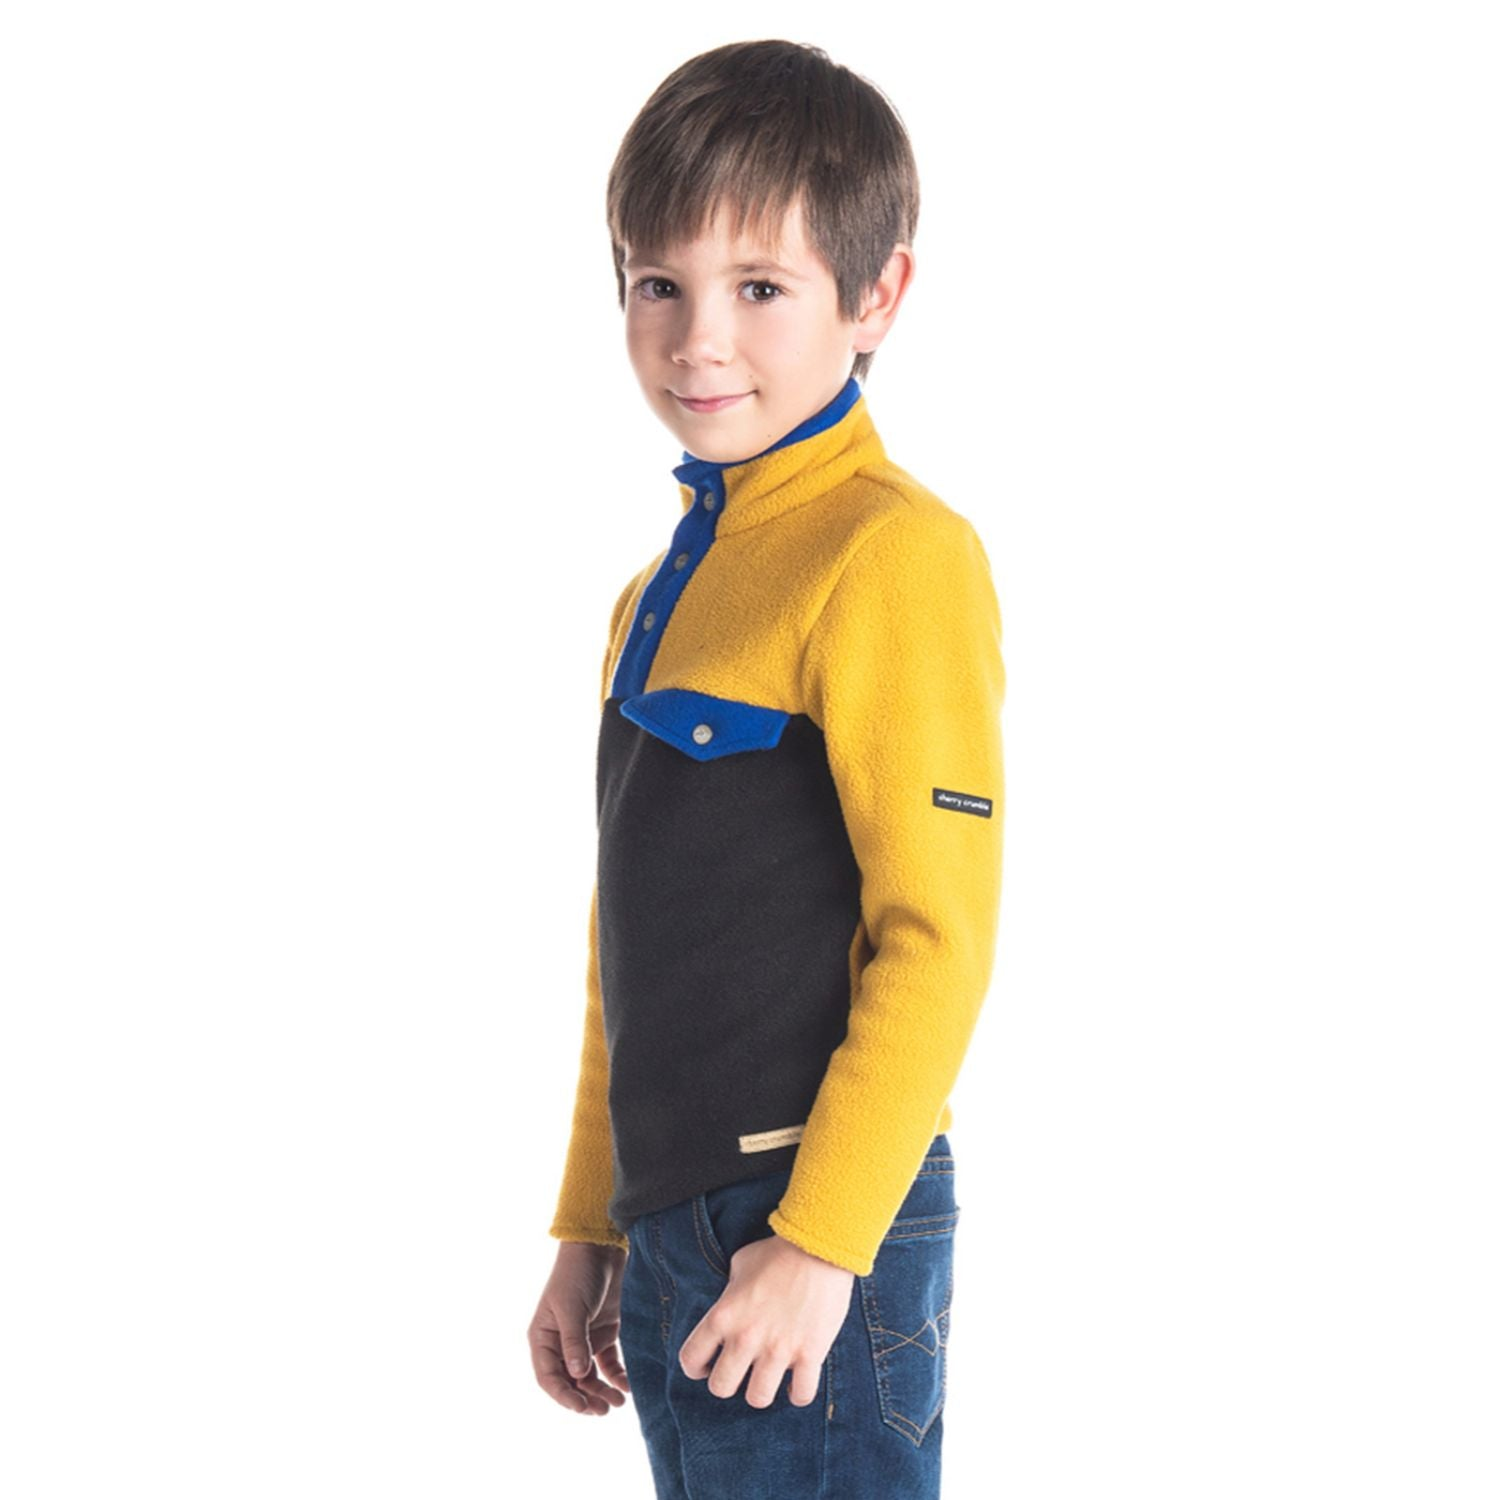 Marvelous Sweatshirt for Boys